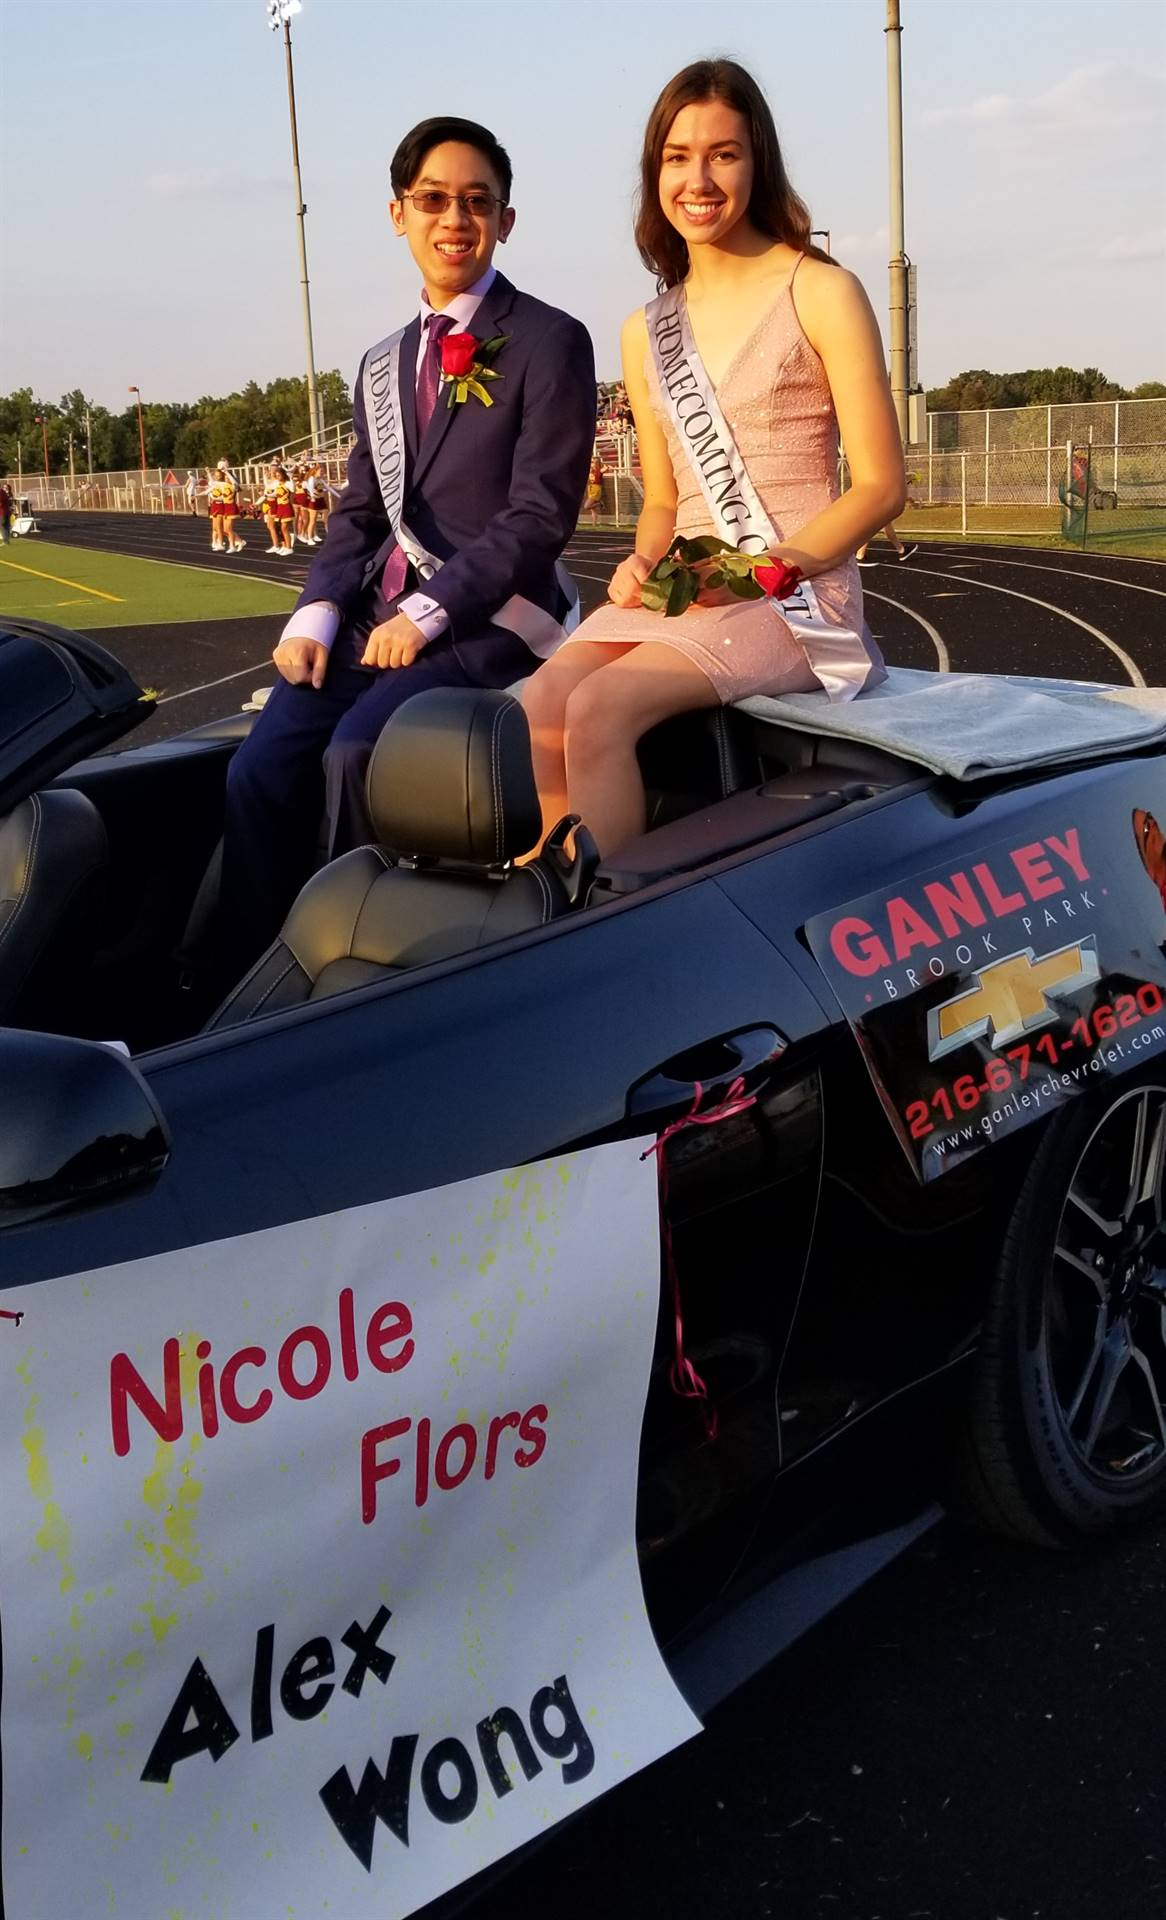 Homecoming Royalty King Alex Wong and Queen Nicole Flors